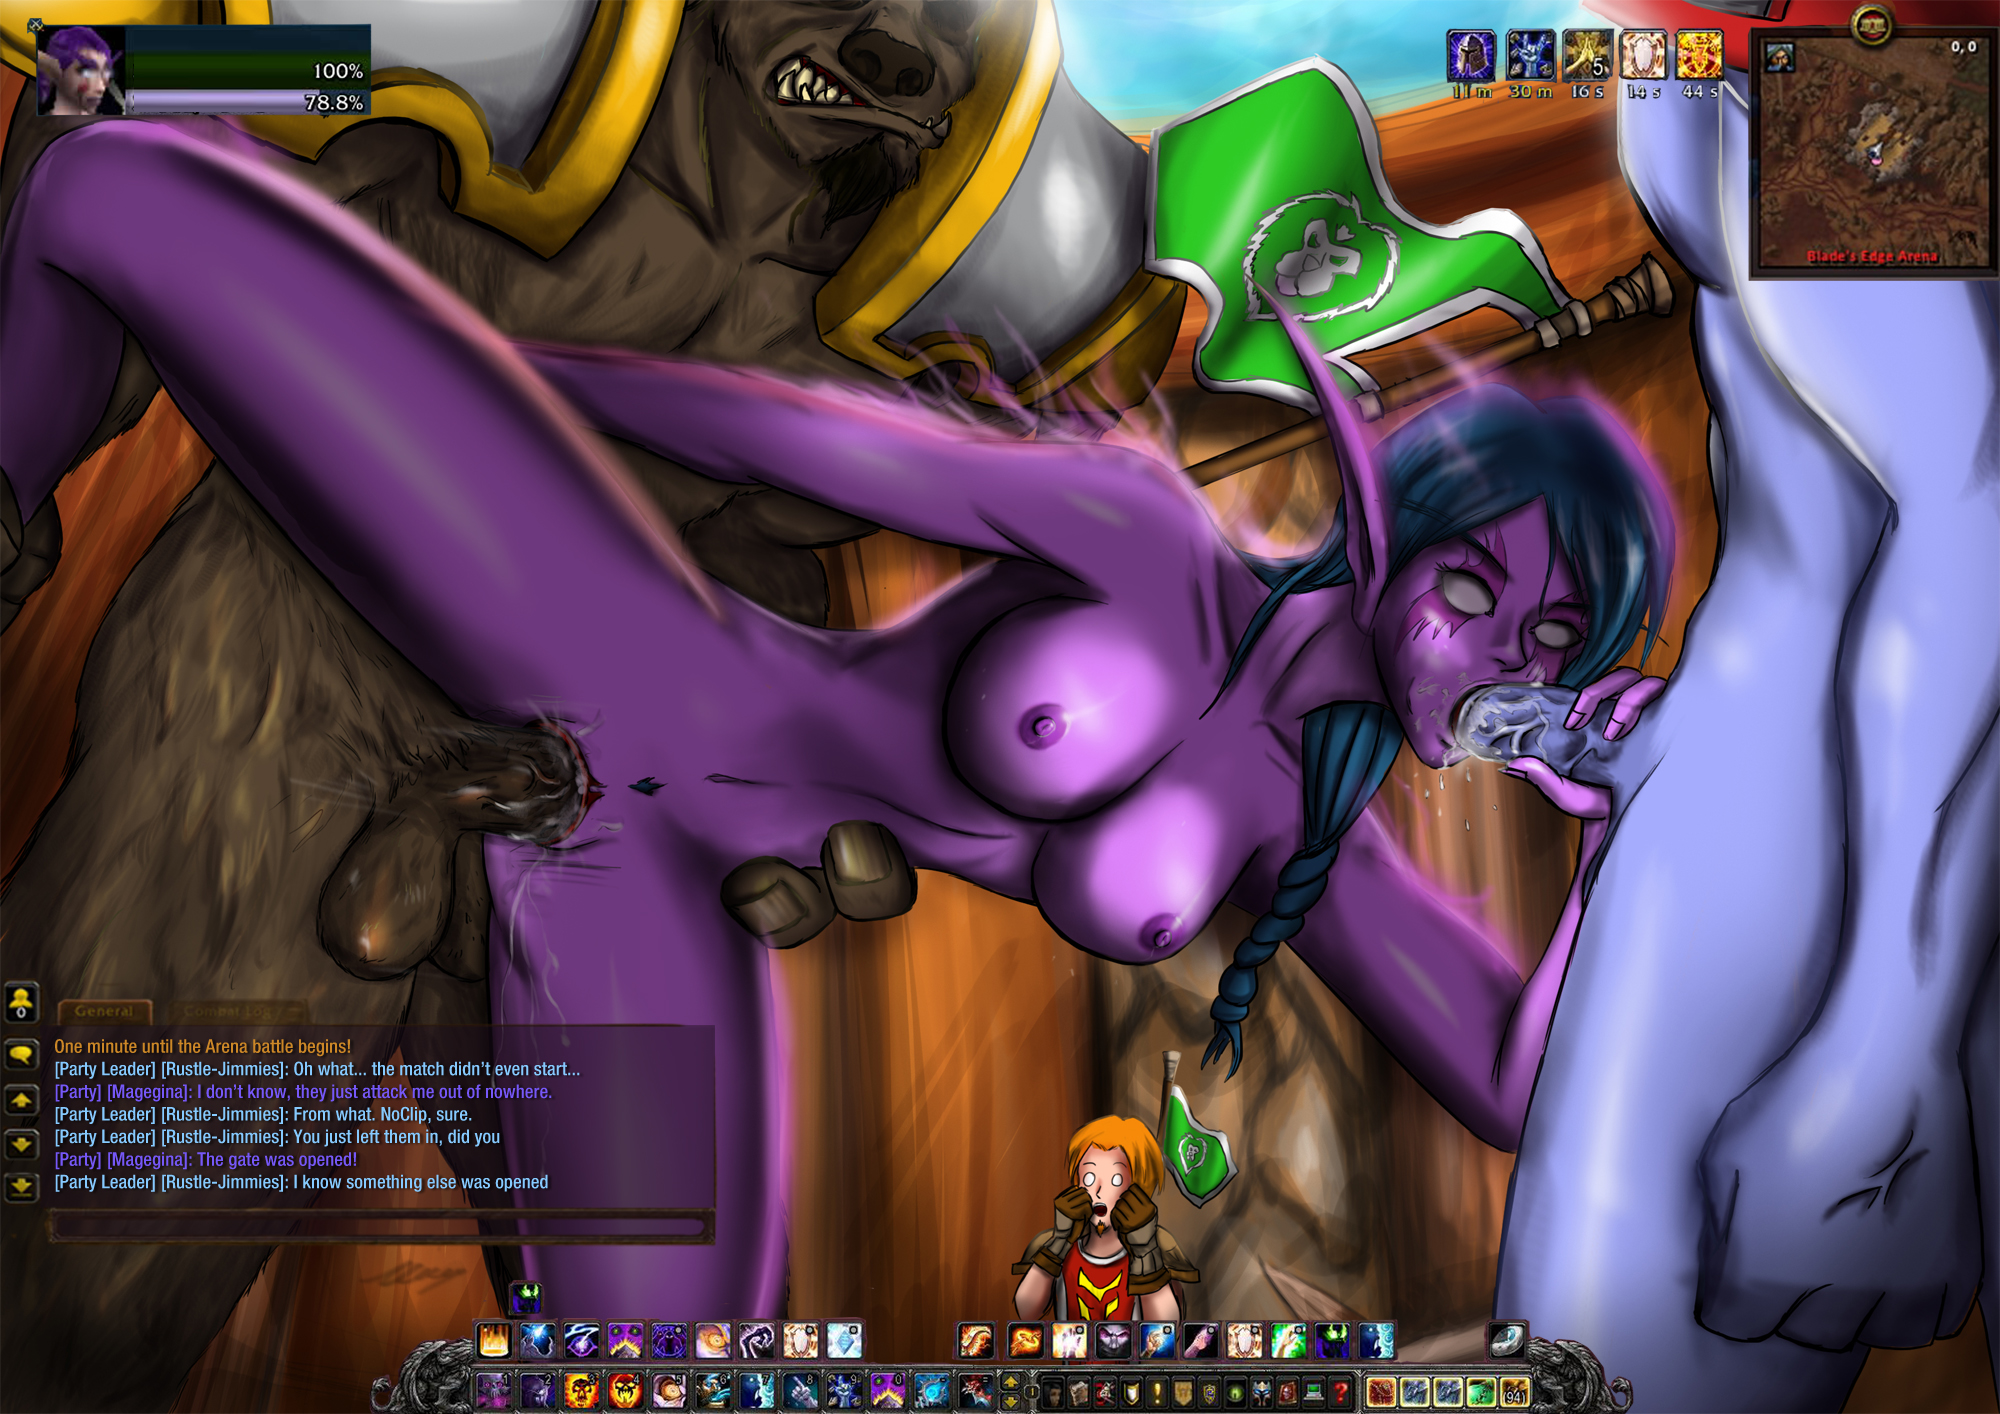 World of warcraft porn videos night elves xxx image